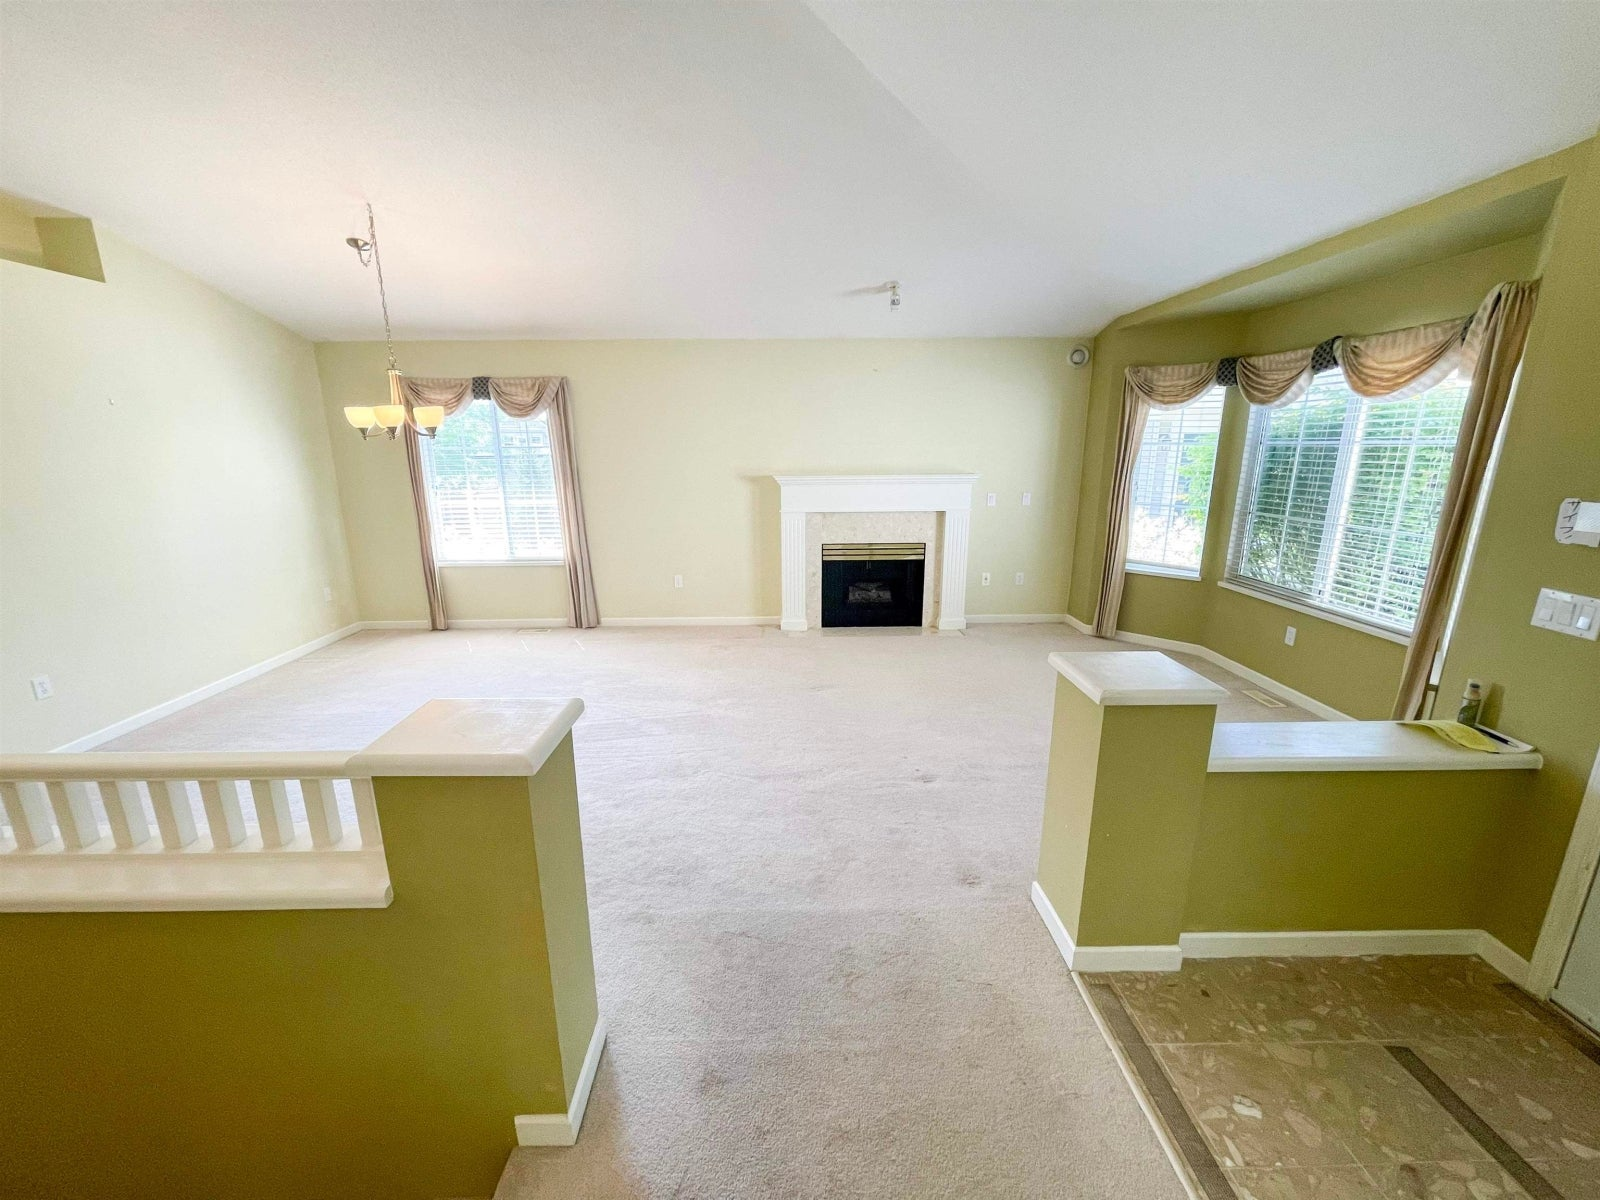 8 16888 80 AVENUE - Fleetwood Tynehead Townhouse for sale, 3 Bedrooms (R2618785) #3